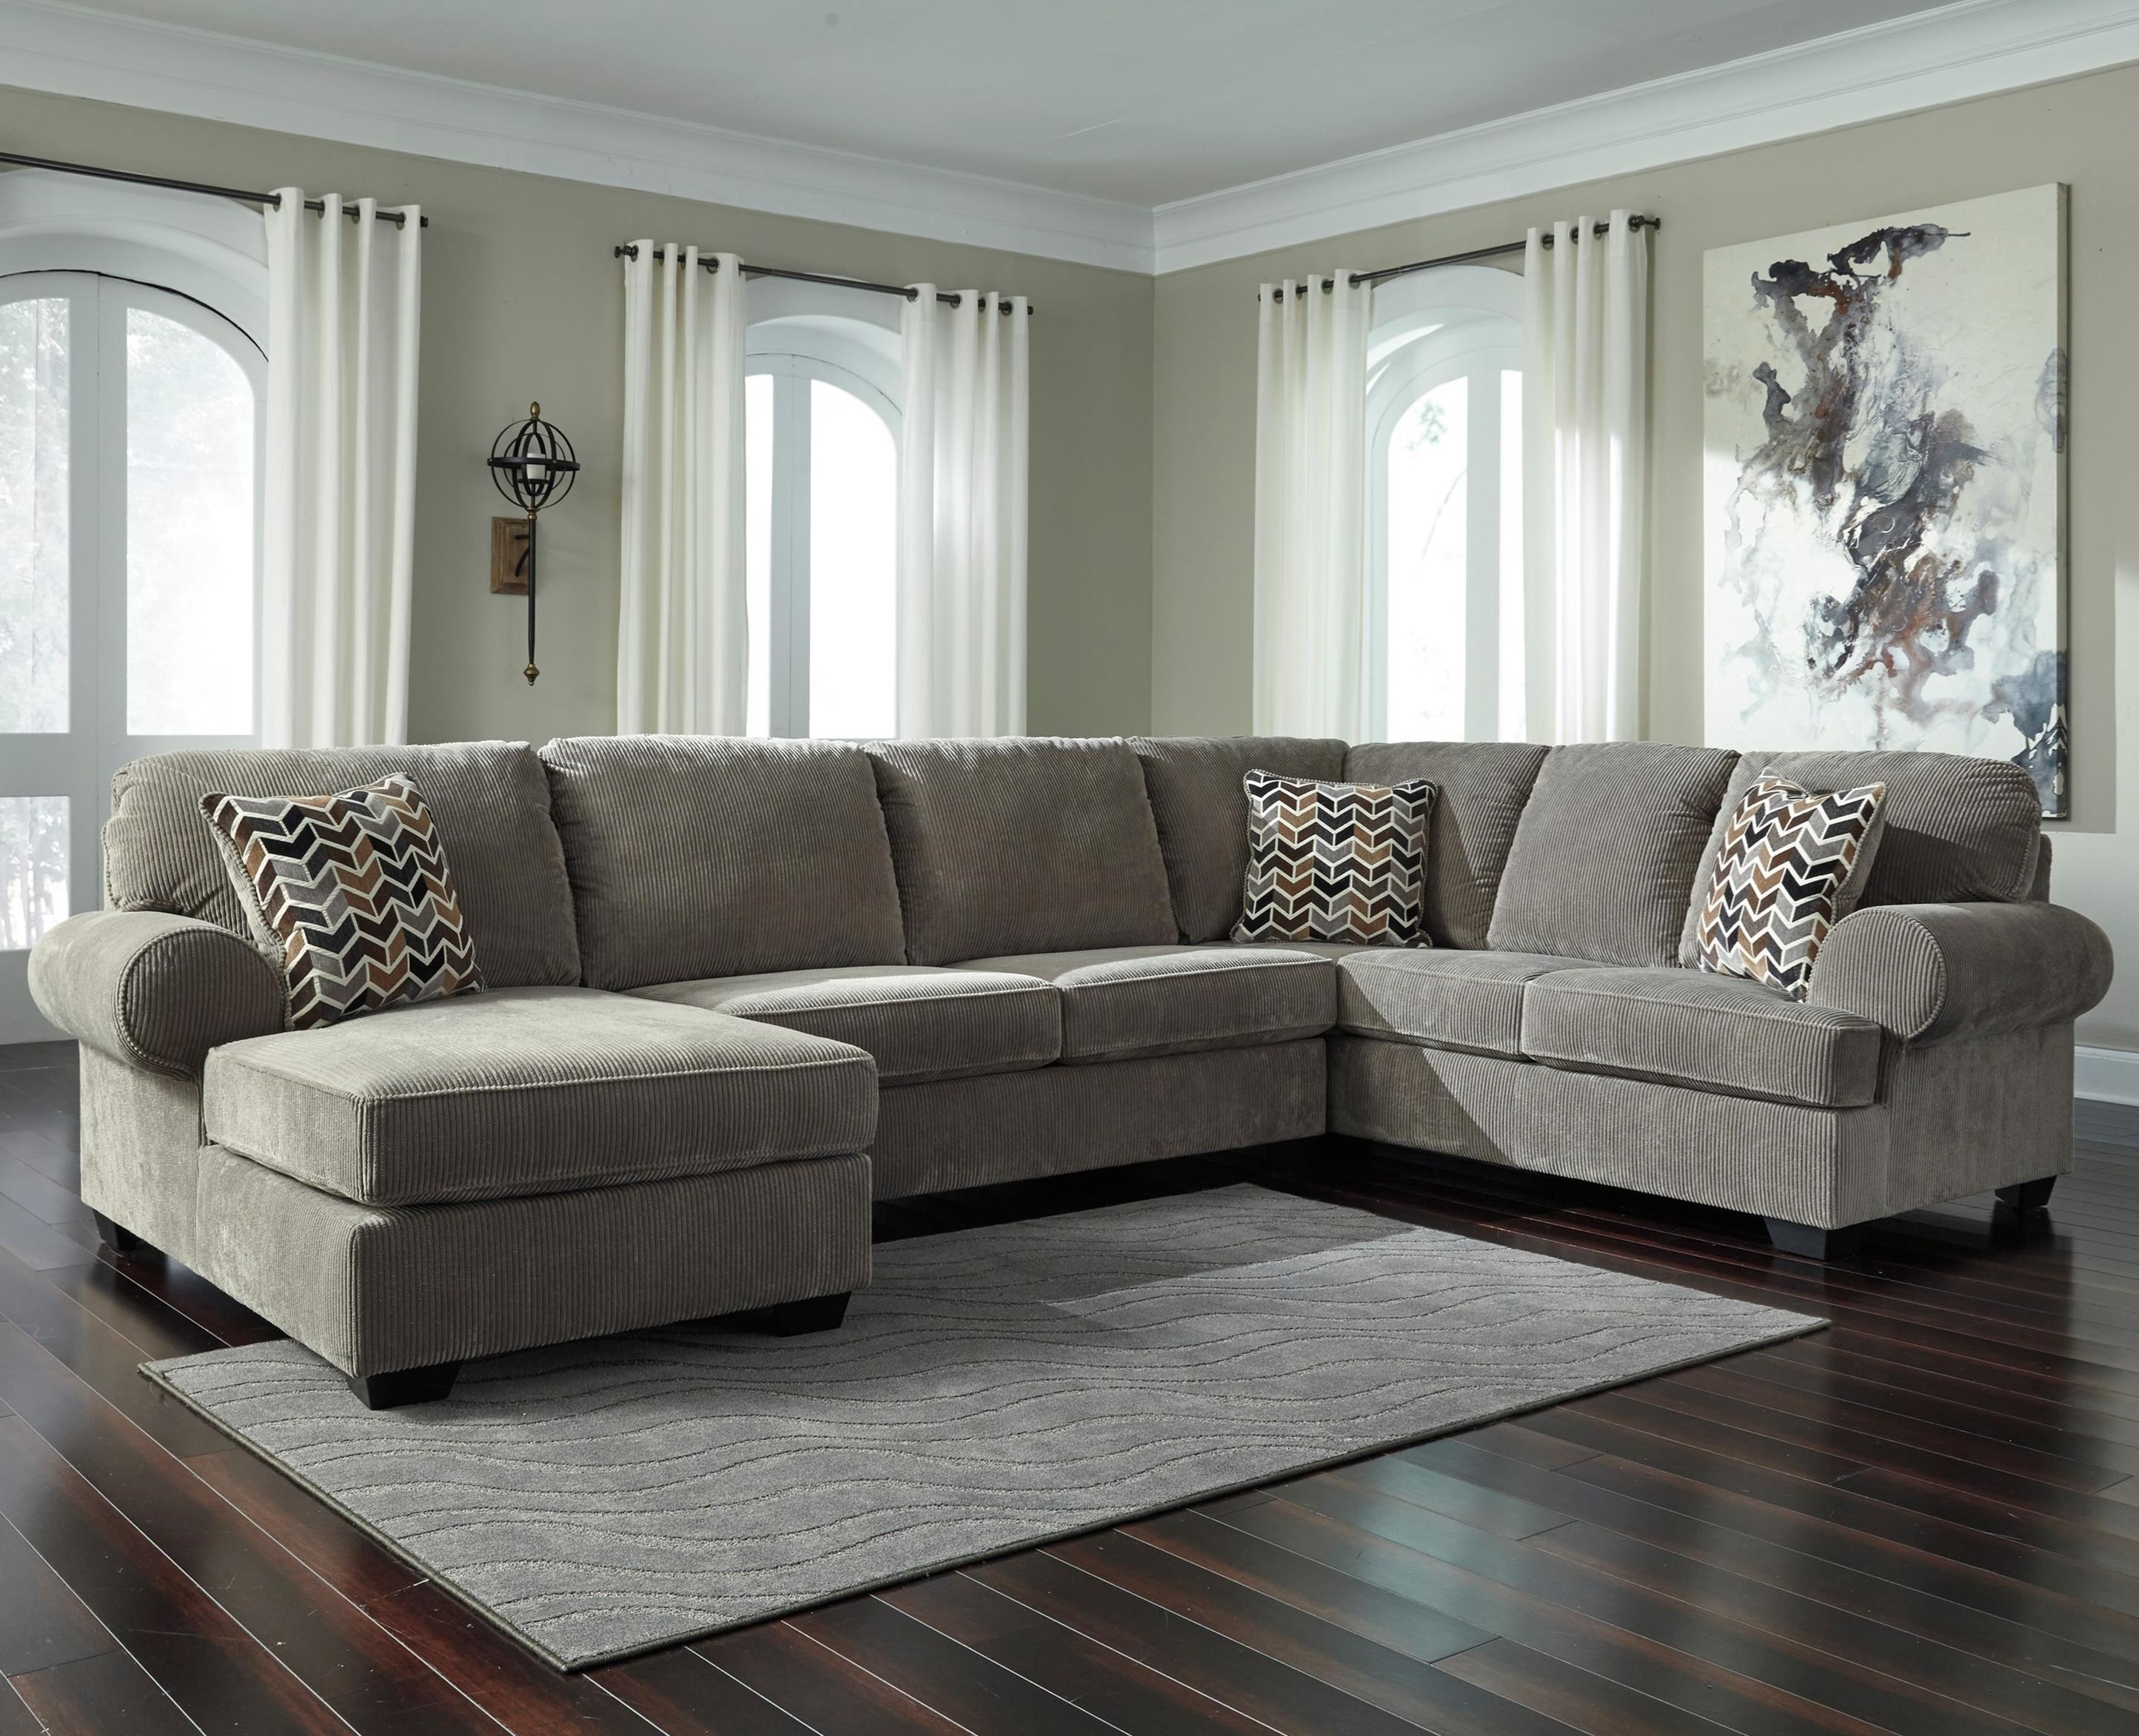 Signature Design By Ashley Jinllingsly Contemporary 3 Piece Sectional With  Left Chaise In Corduroy Fabric